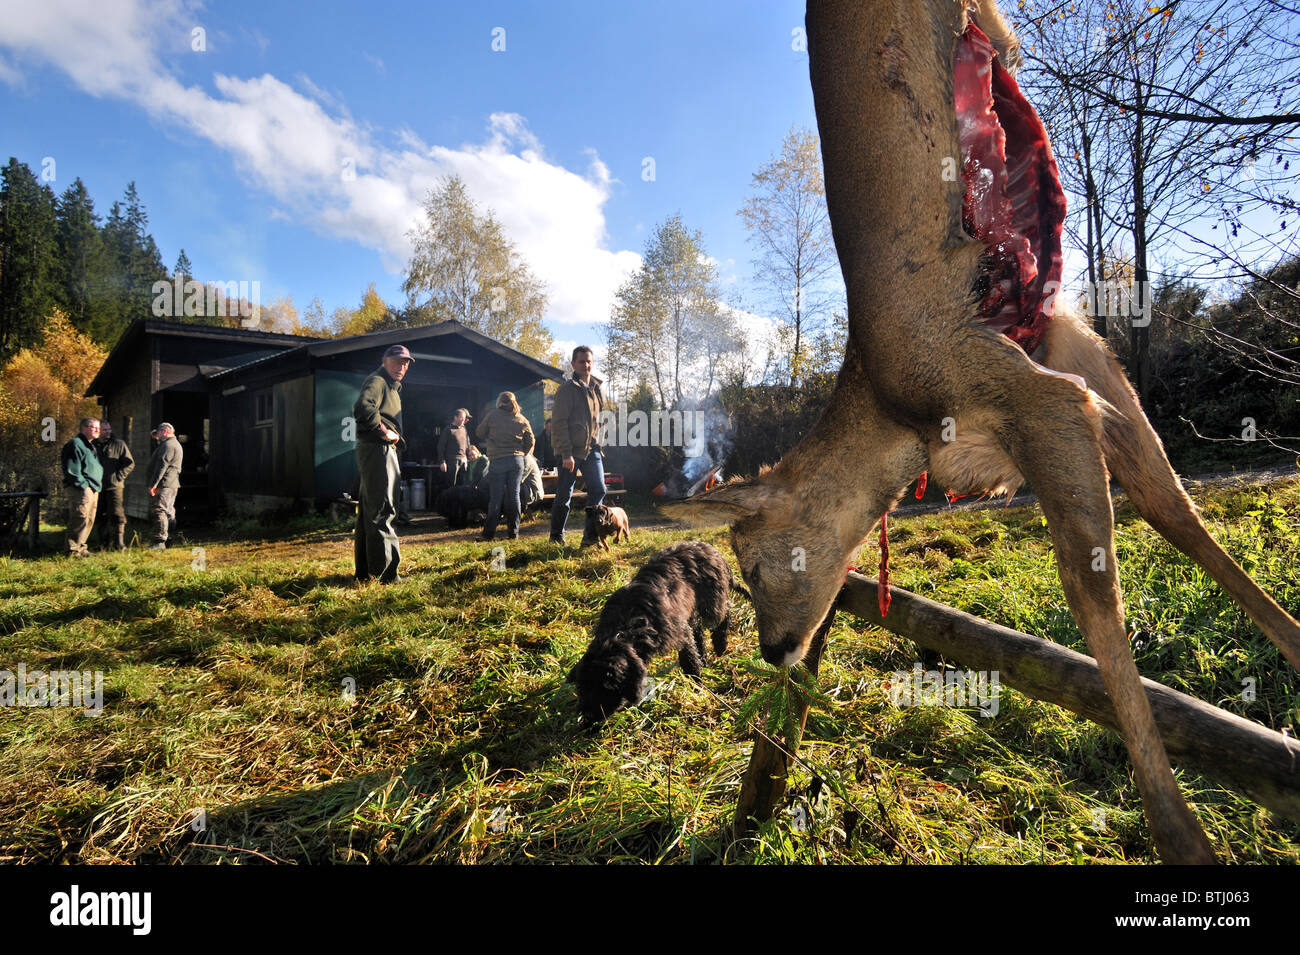 Gutted / Field dressed roe deer (Capreolus capreolus) and hunters in the Ardennes, Belgium - Stock Image